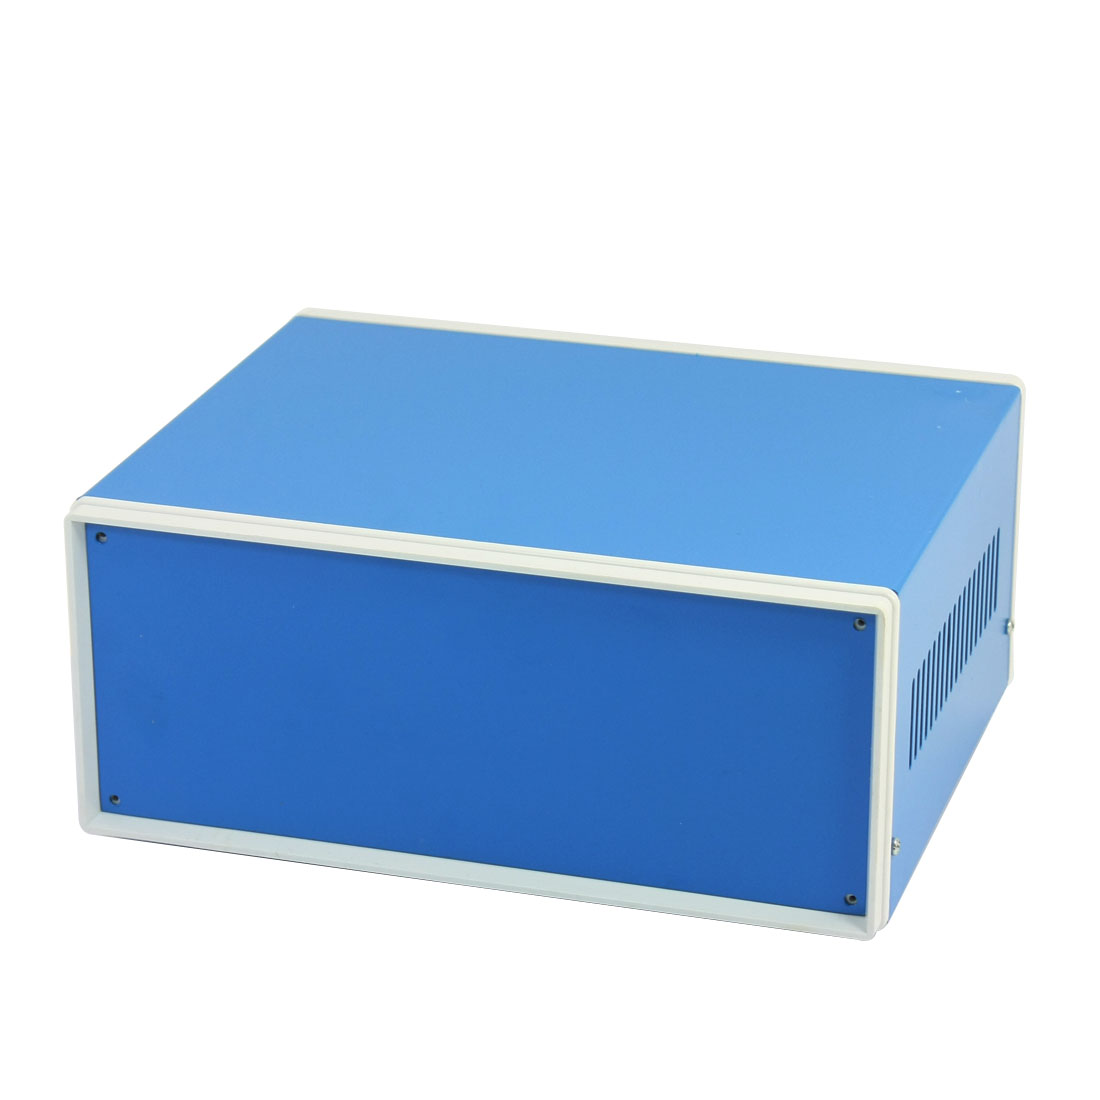 9-1-x-7-3-x-3-9-Blue-Metal-Enclosure-Project-Case-DIY-Junction-Box